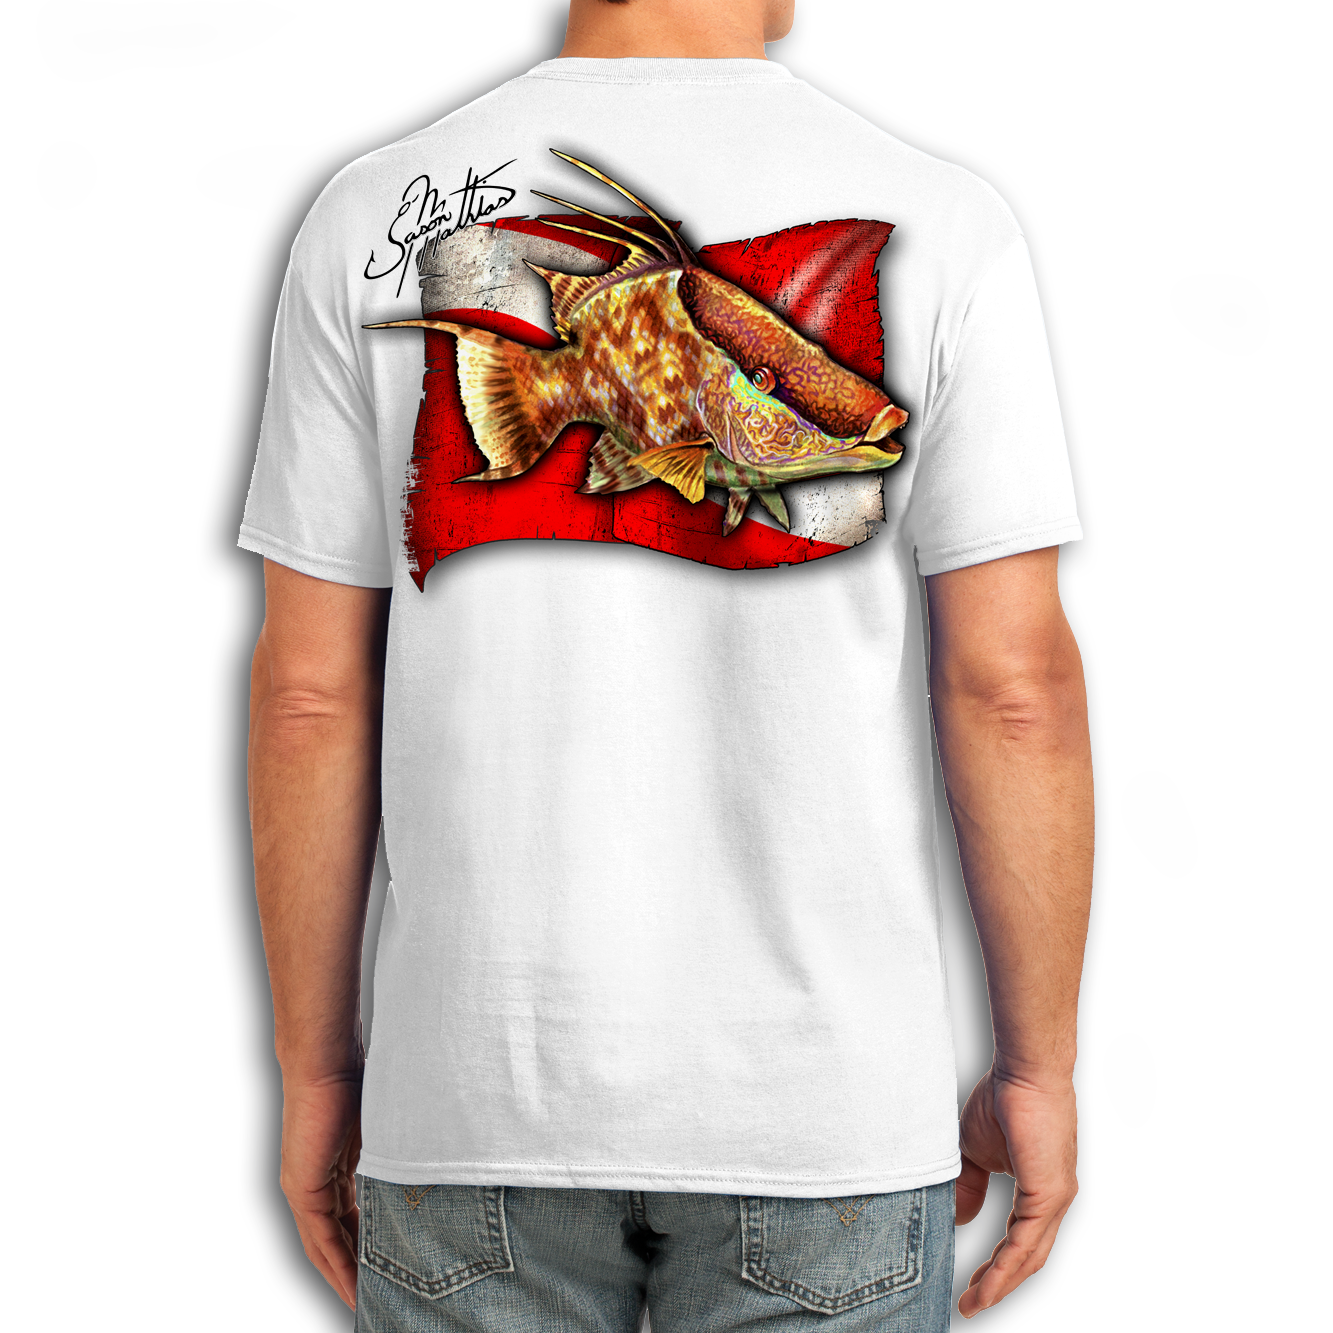 t-shirt-short-sleeve-cotton-white-jason-mathias-art-hogfish-dive-flag.png